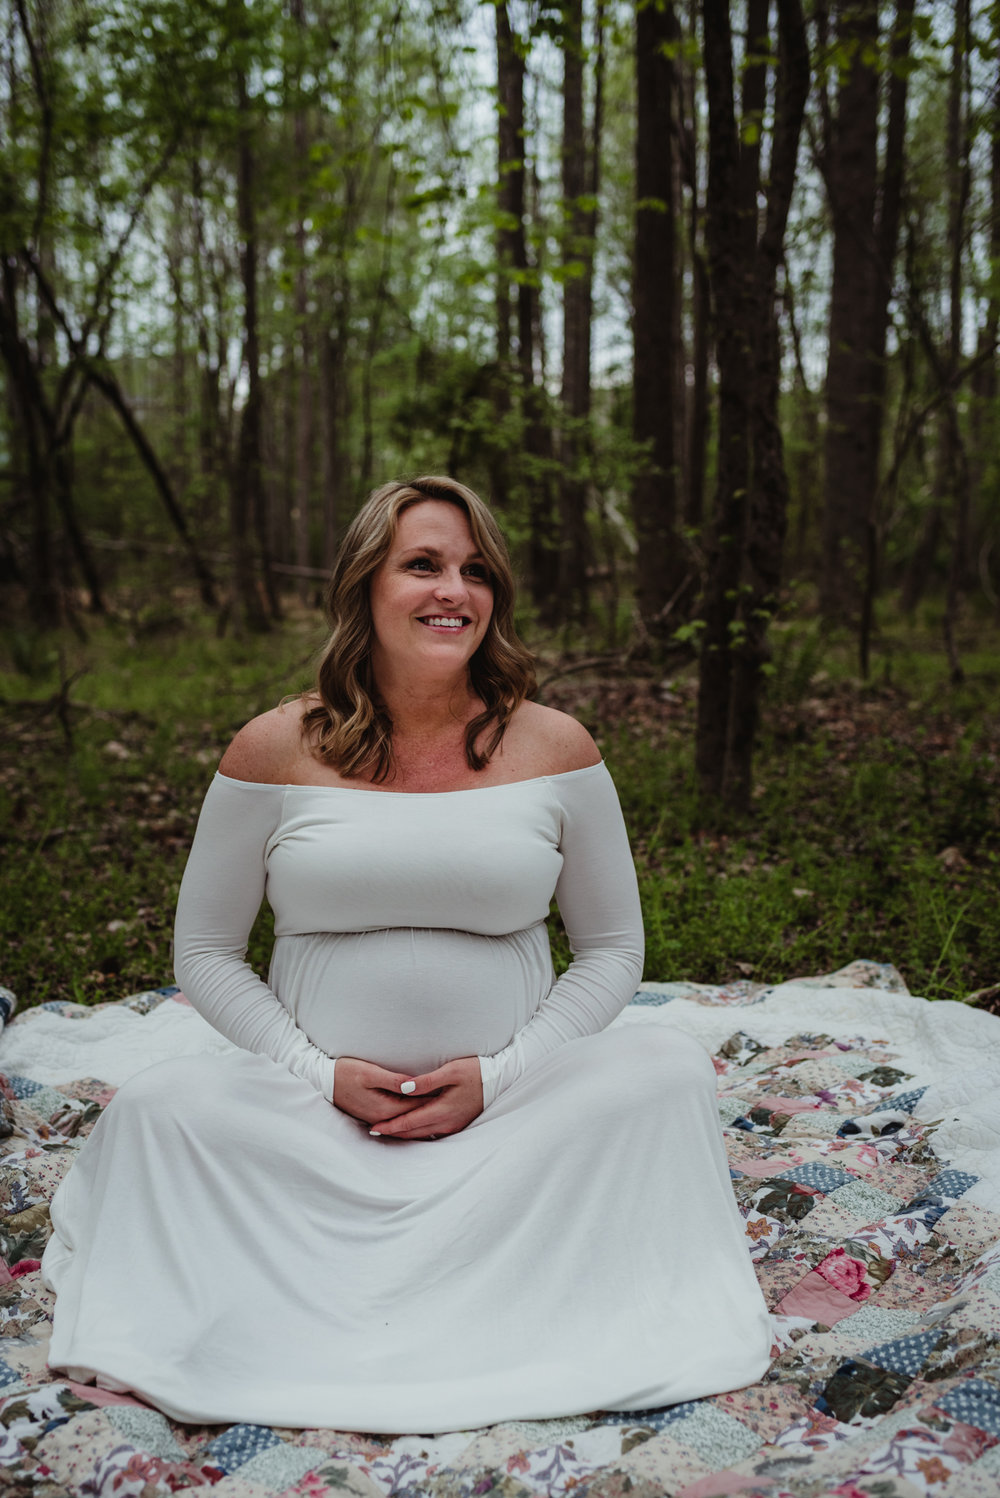 The pregnant Mama smiles for Rose Trail Images during her maternity shoot at Mill Bridge Nature Park in Rolesville, NC.